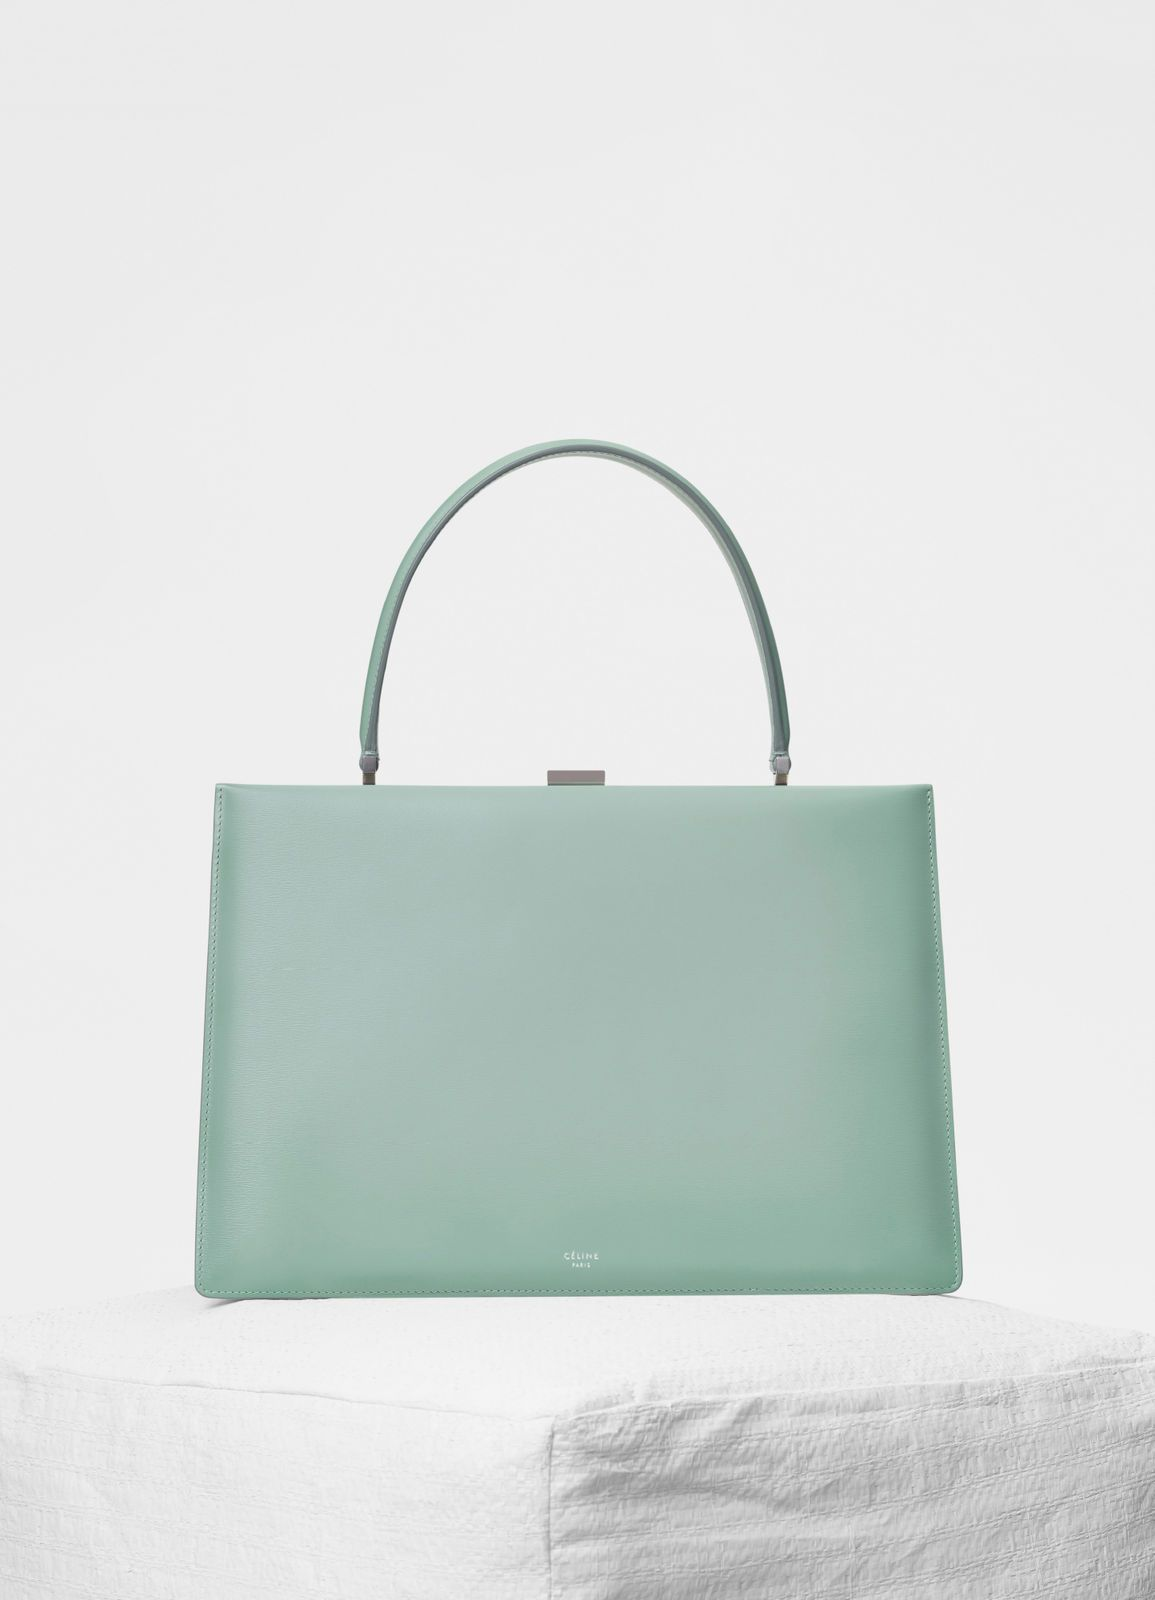 1aaa75c4eb63 Céline - Medium Clasp handbag in ice mint box calfskin with pattina ...